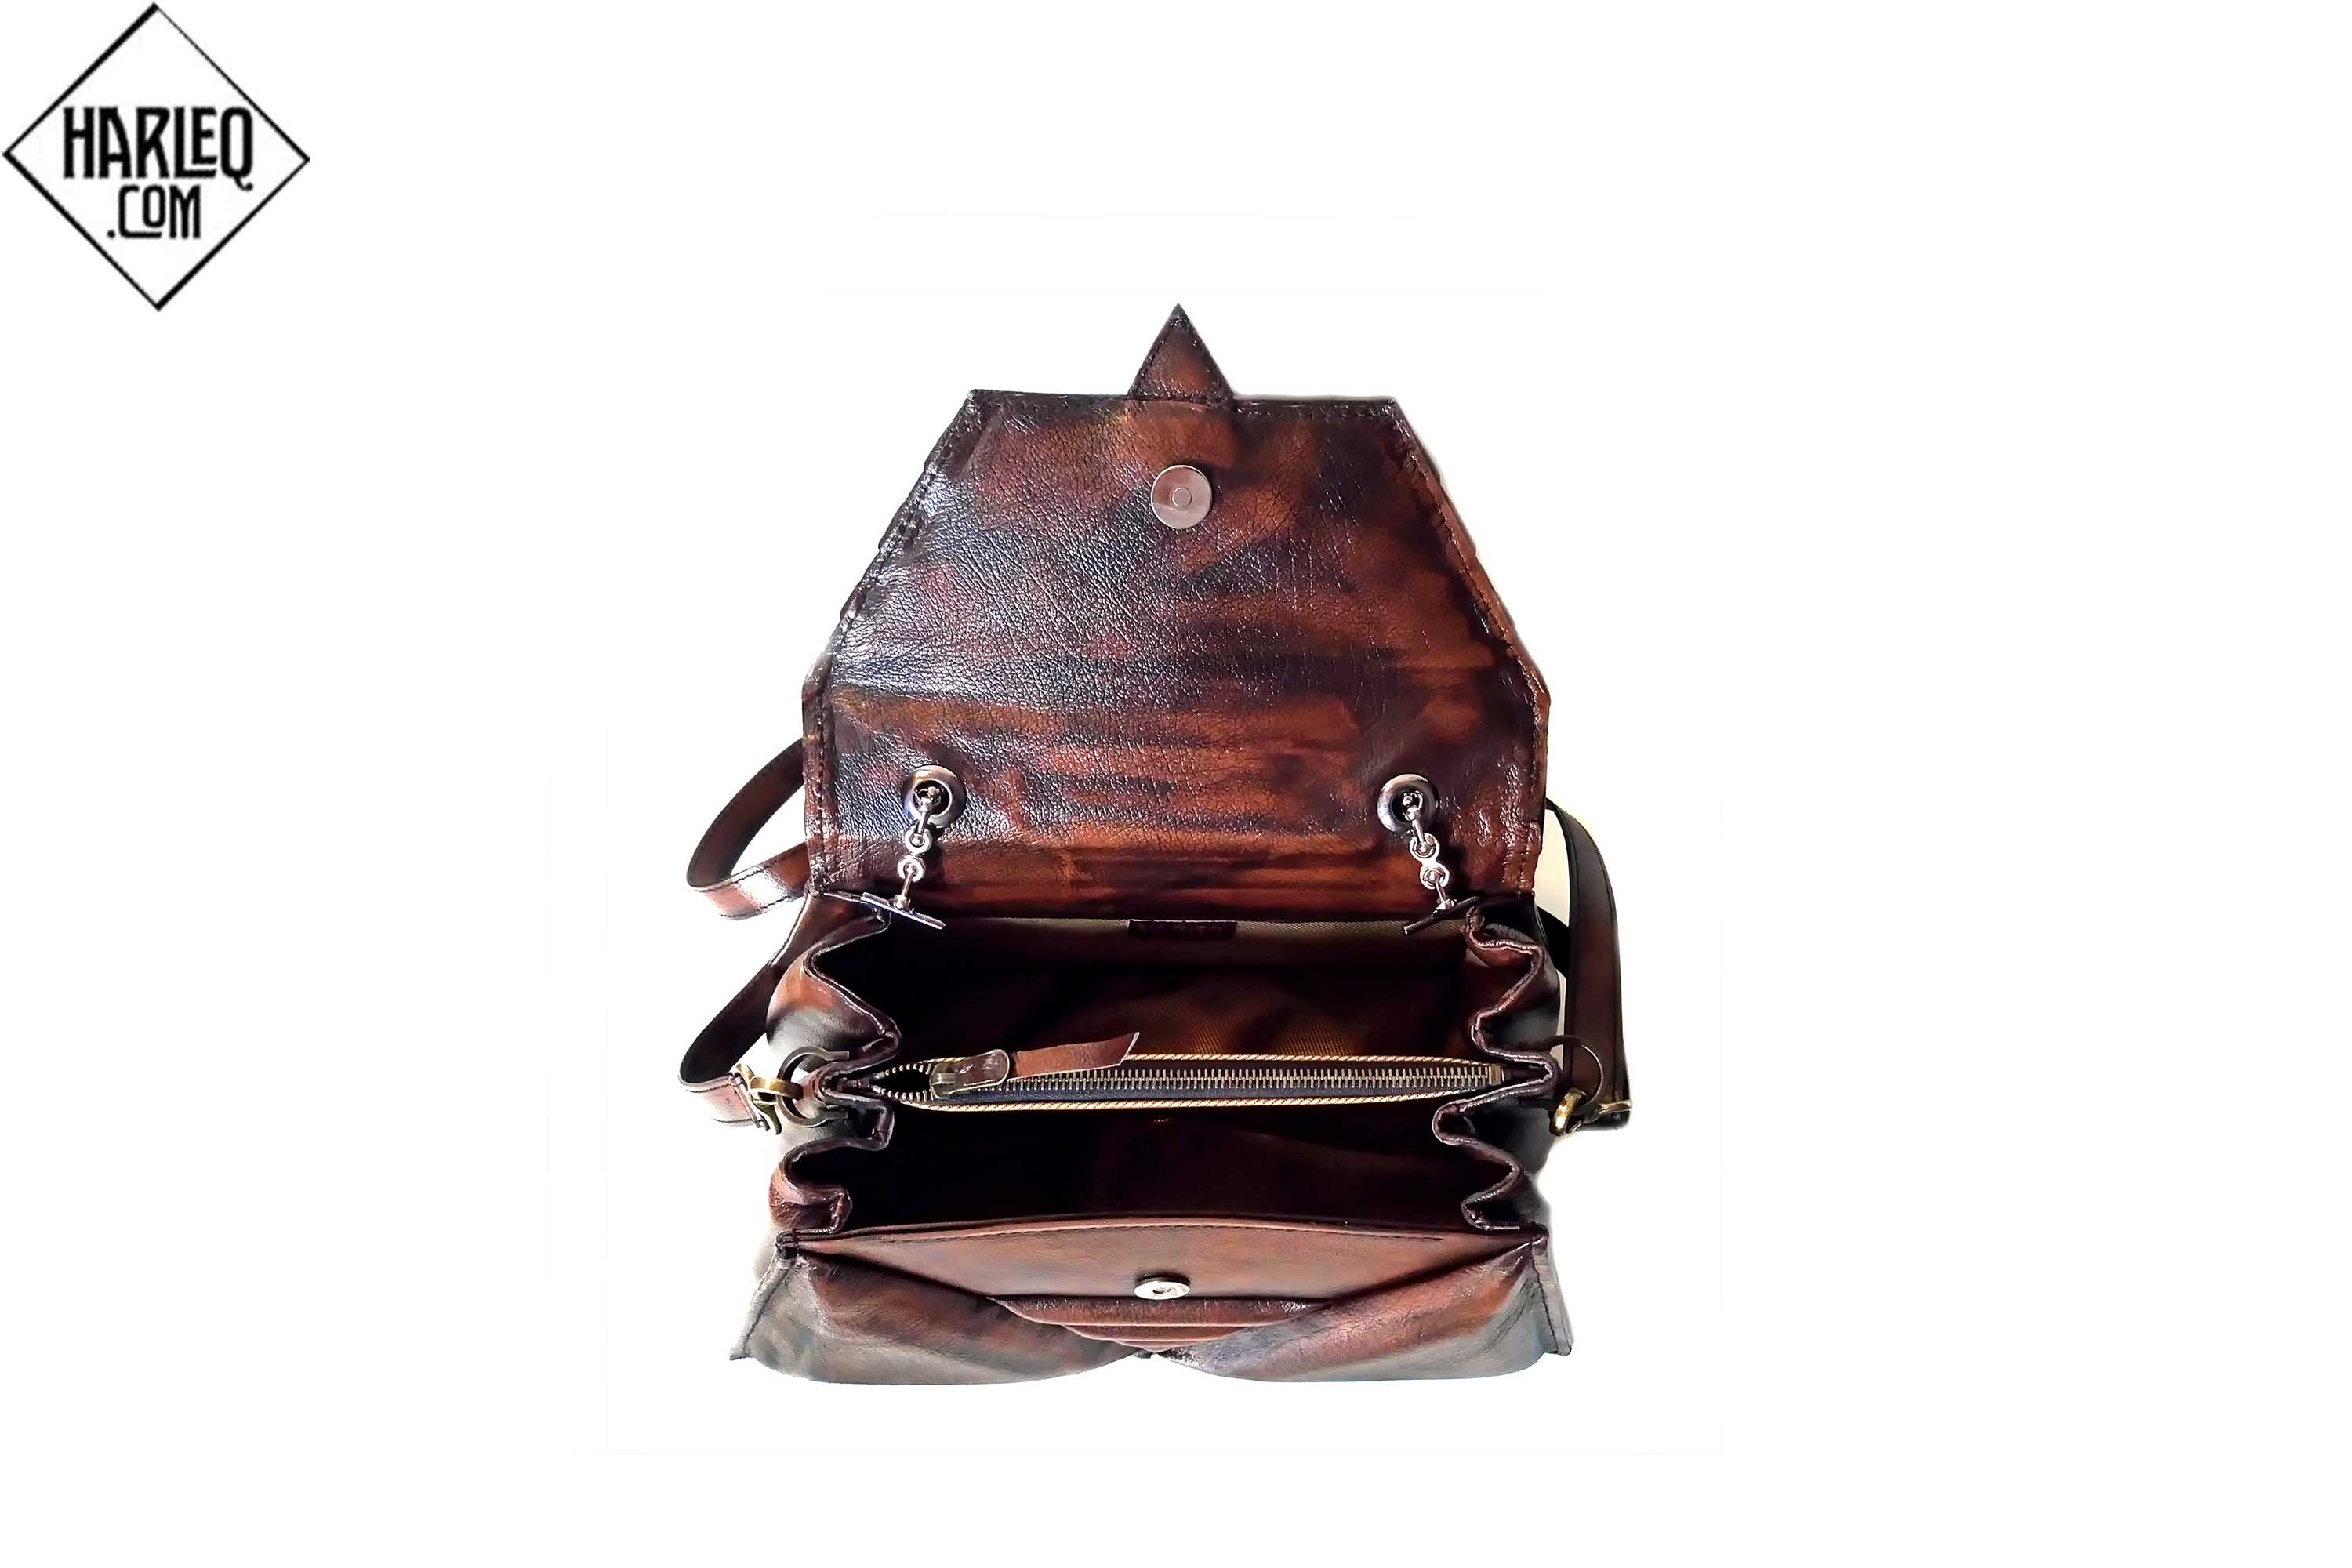 harleq brown leather triangles bag